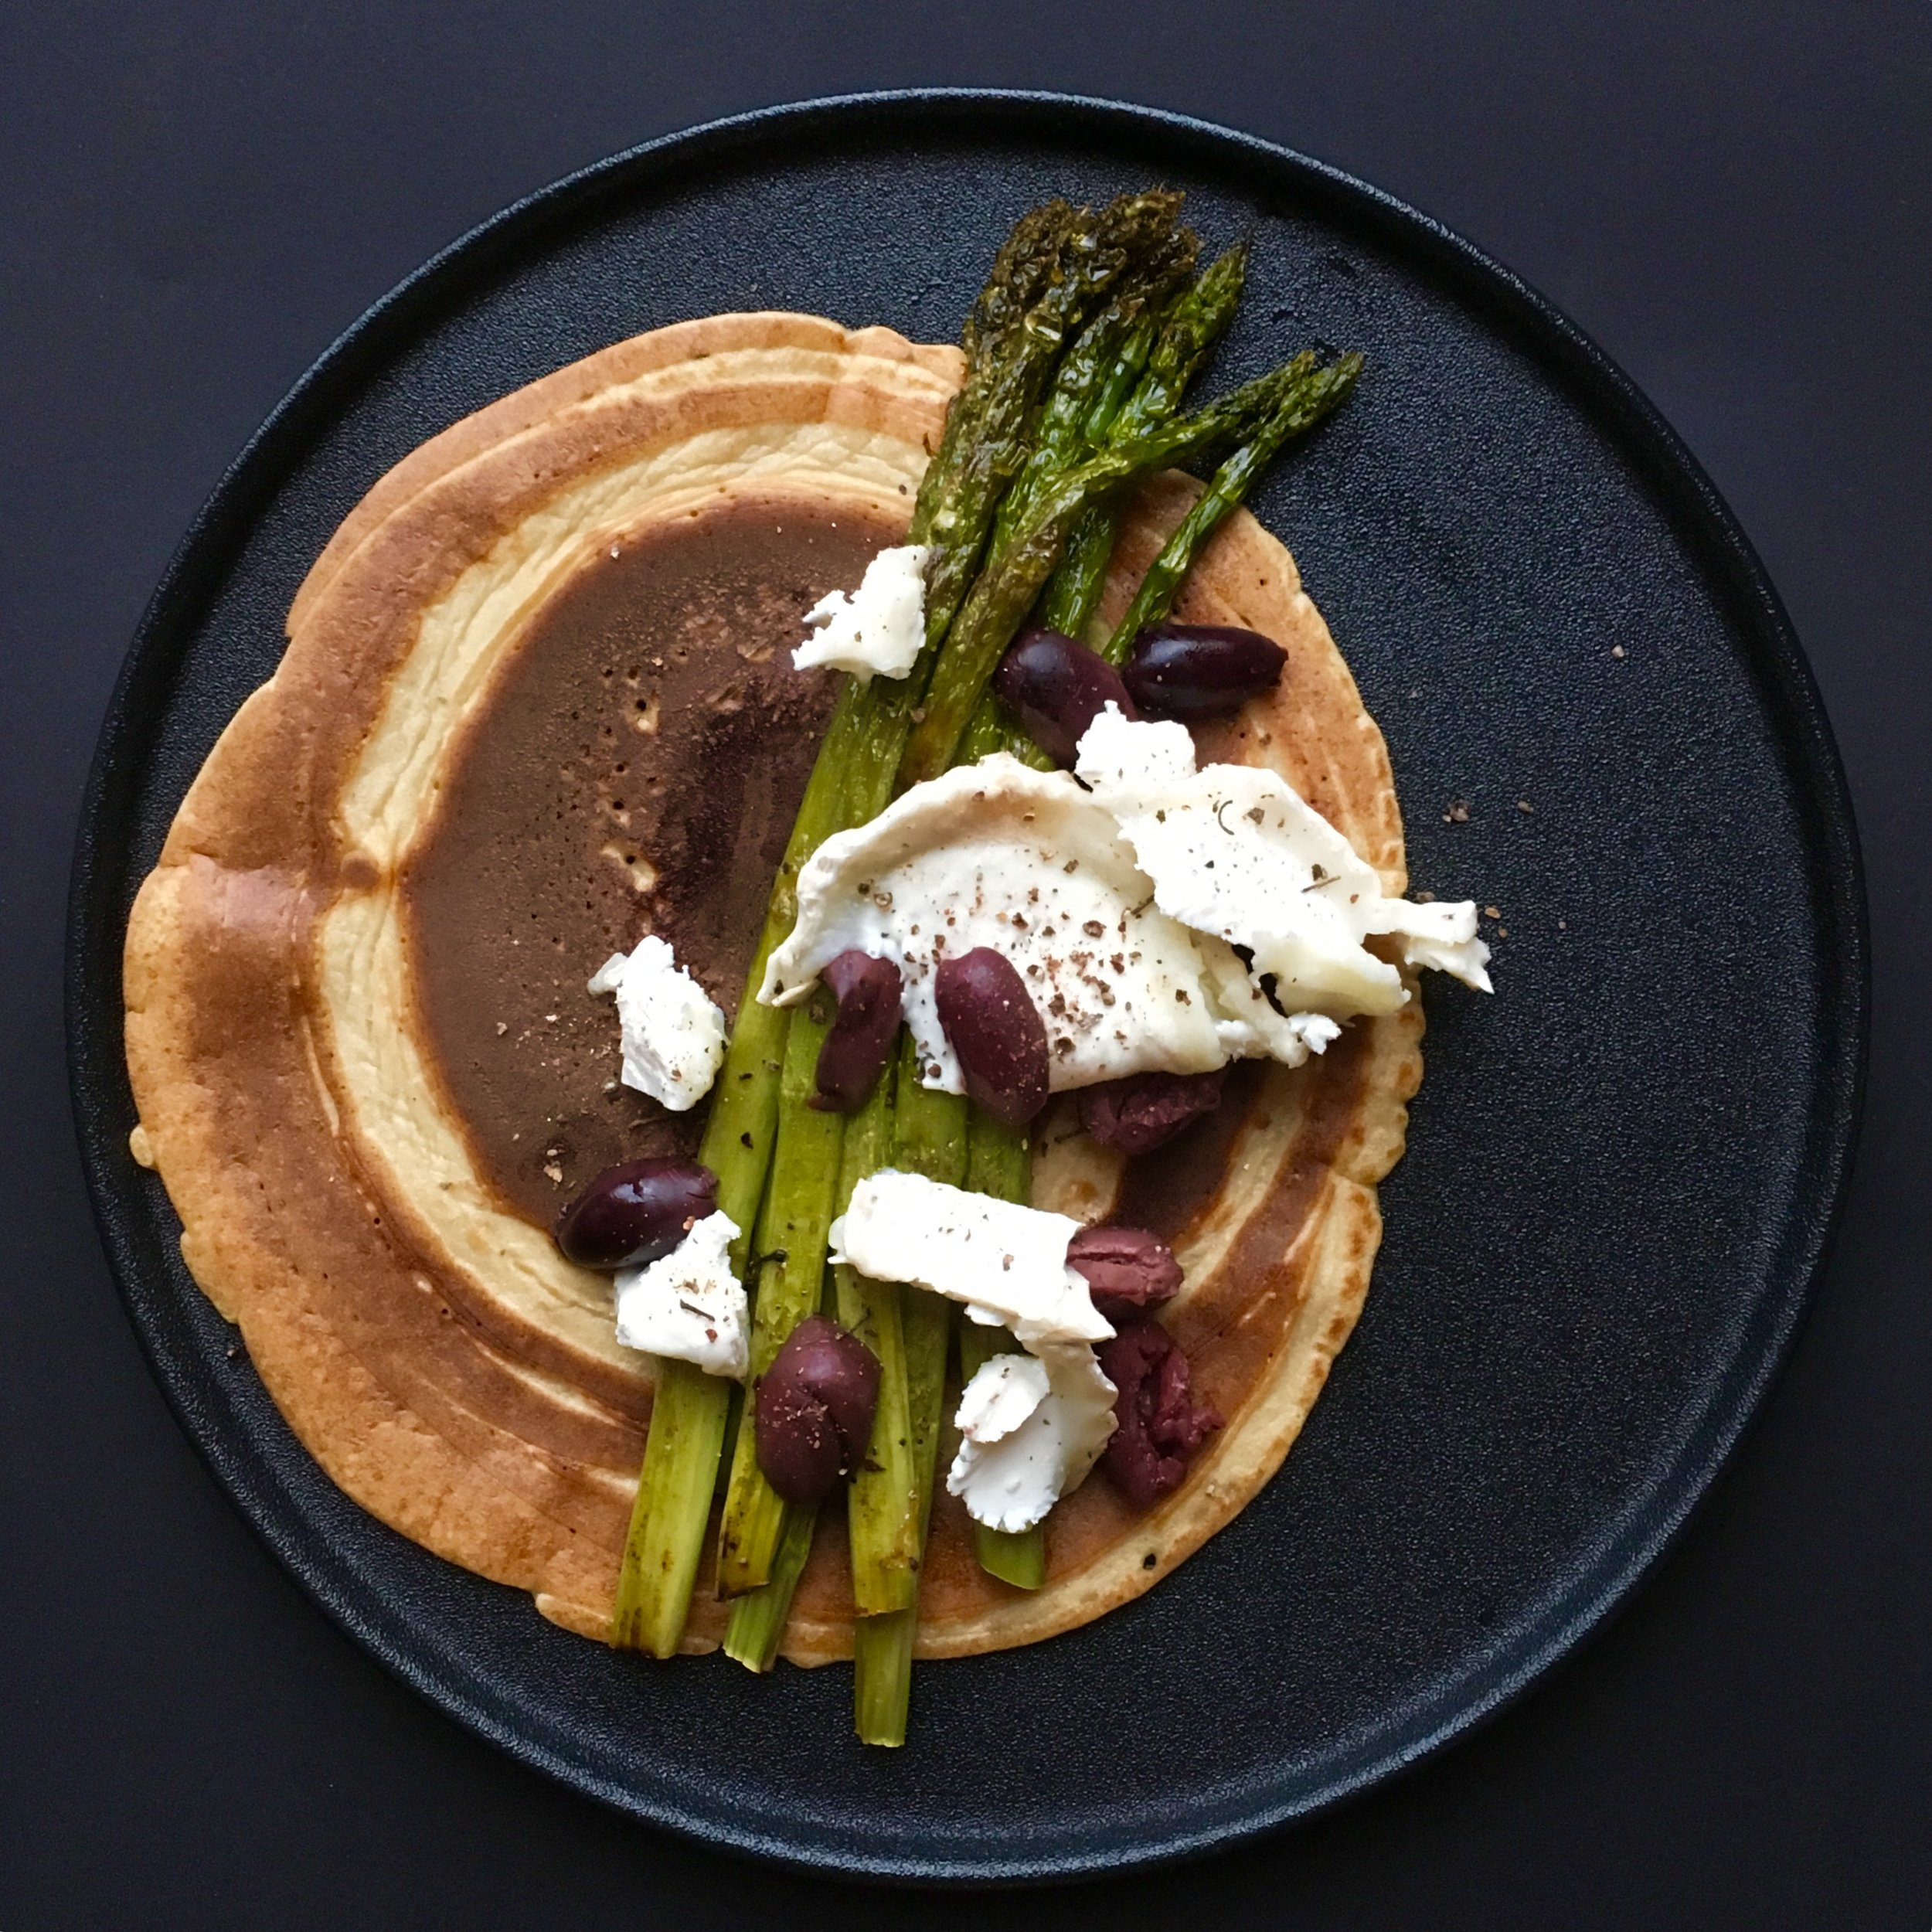 Sourdough pancakes filled with goats cheese, roasted asparagus and olives.